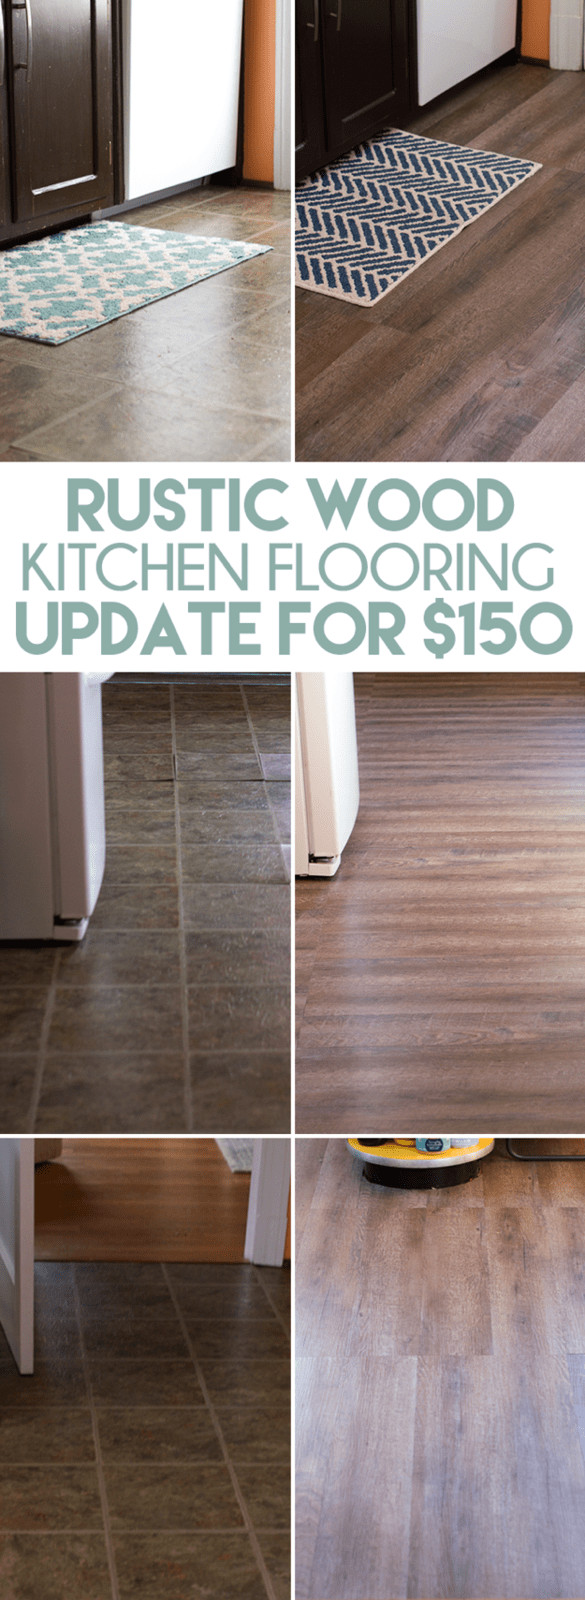 Best ideas about DIY Wood Floors Cheap . Save or Pin Inexpensive Rustic Wood Kitchen Floors Now.